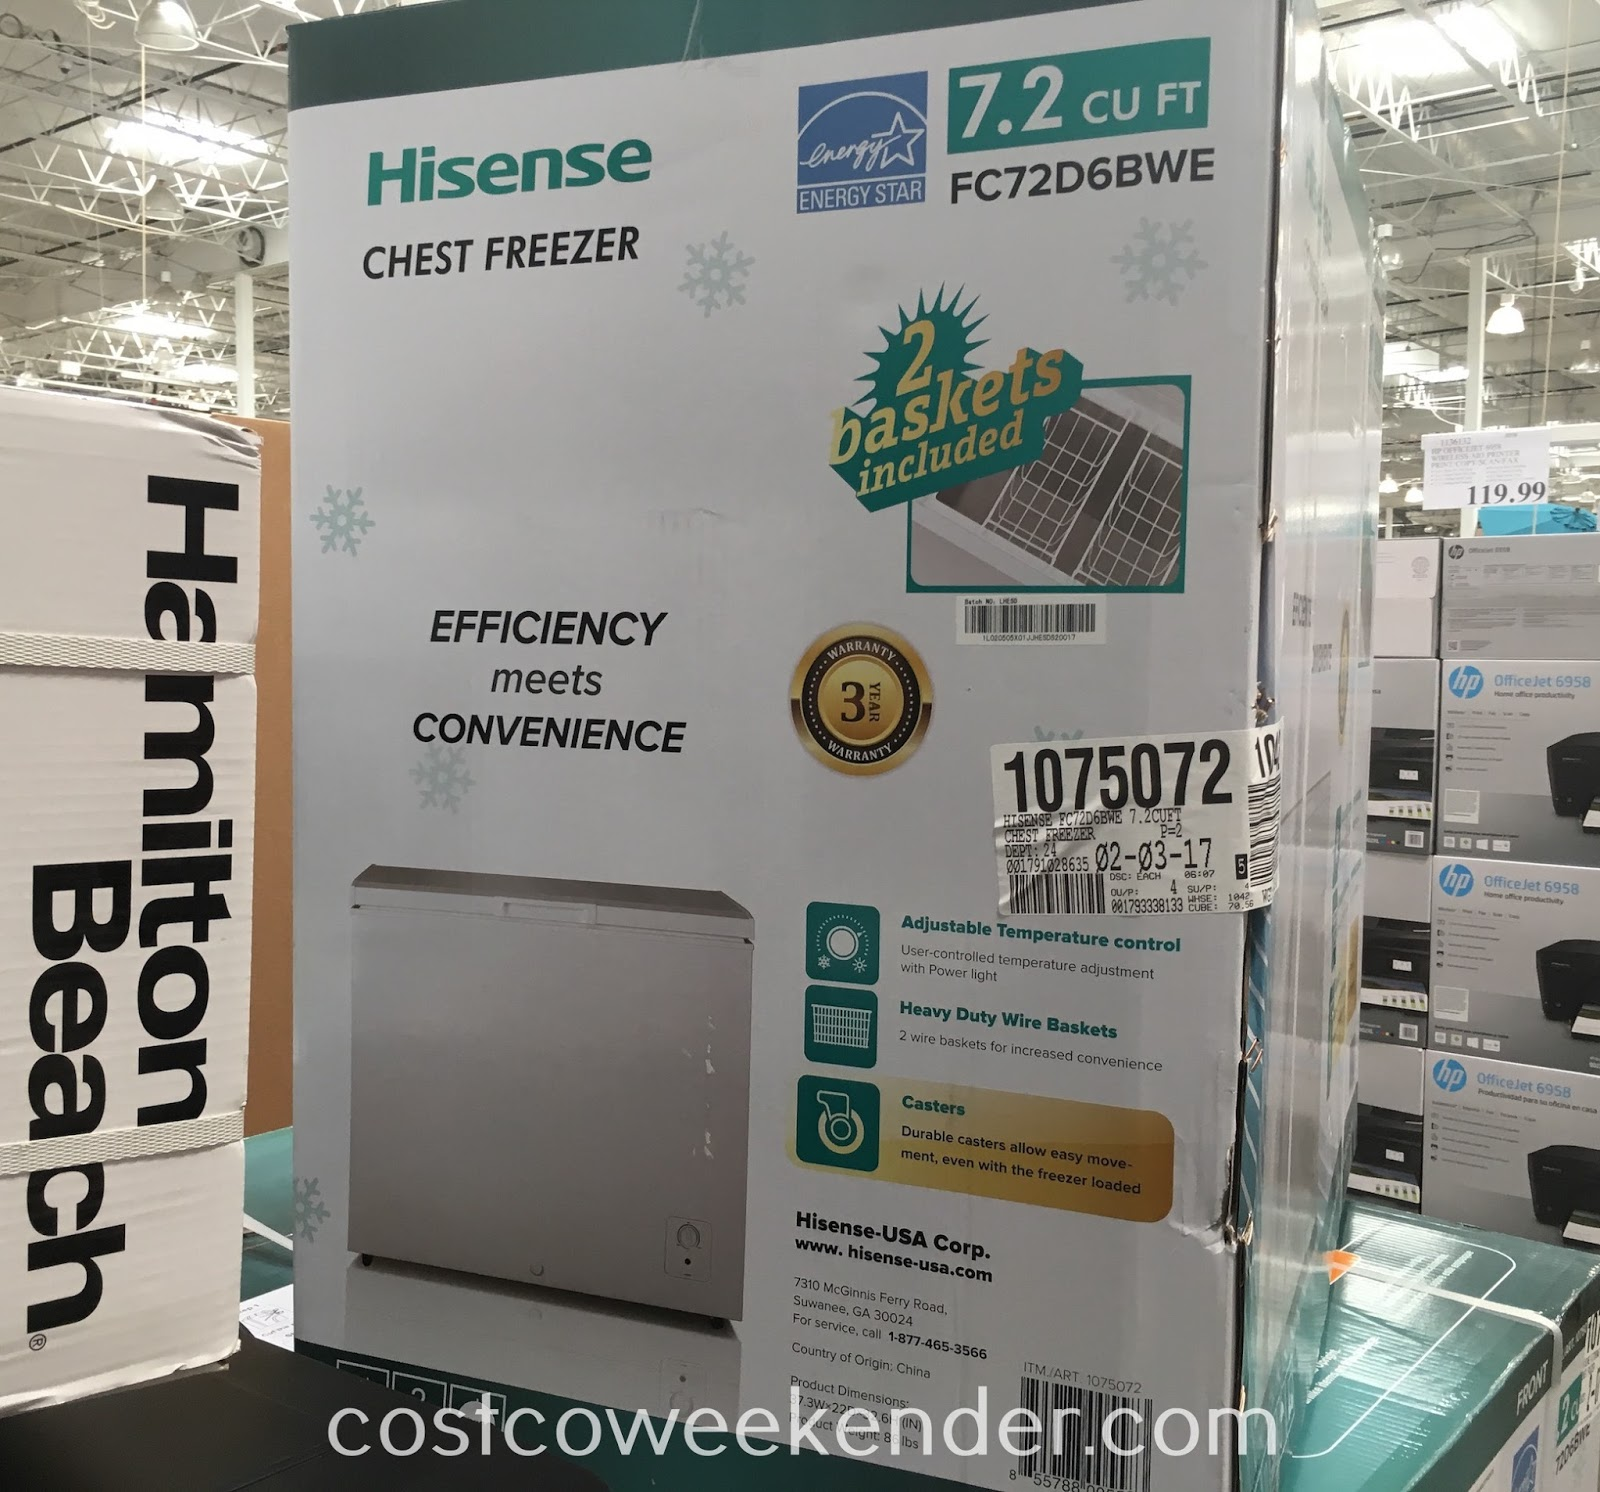 Store and prevent food from going bad with the Hisense FC72D6BWE Chest Freezer